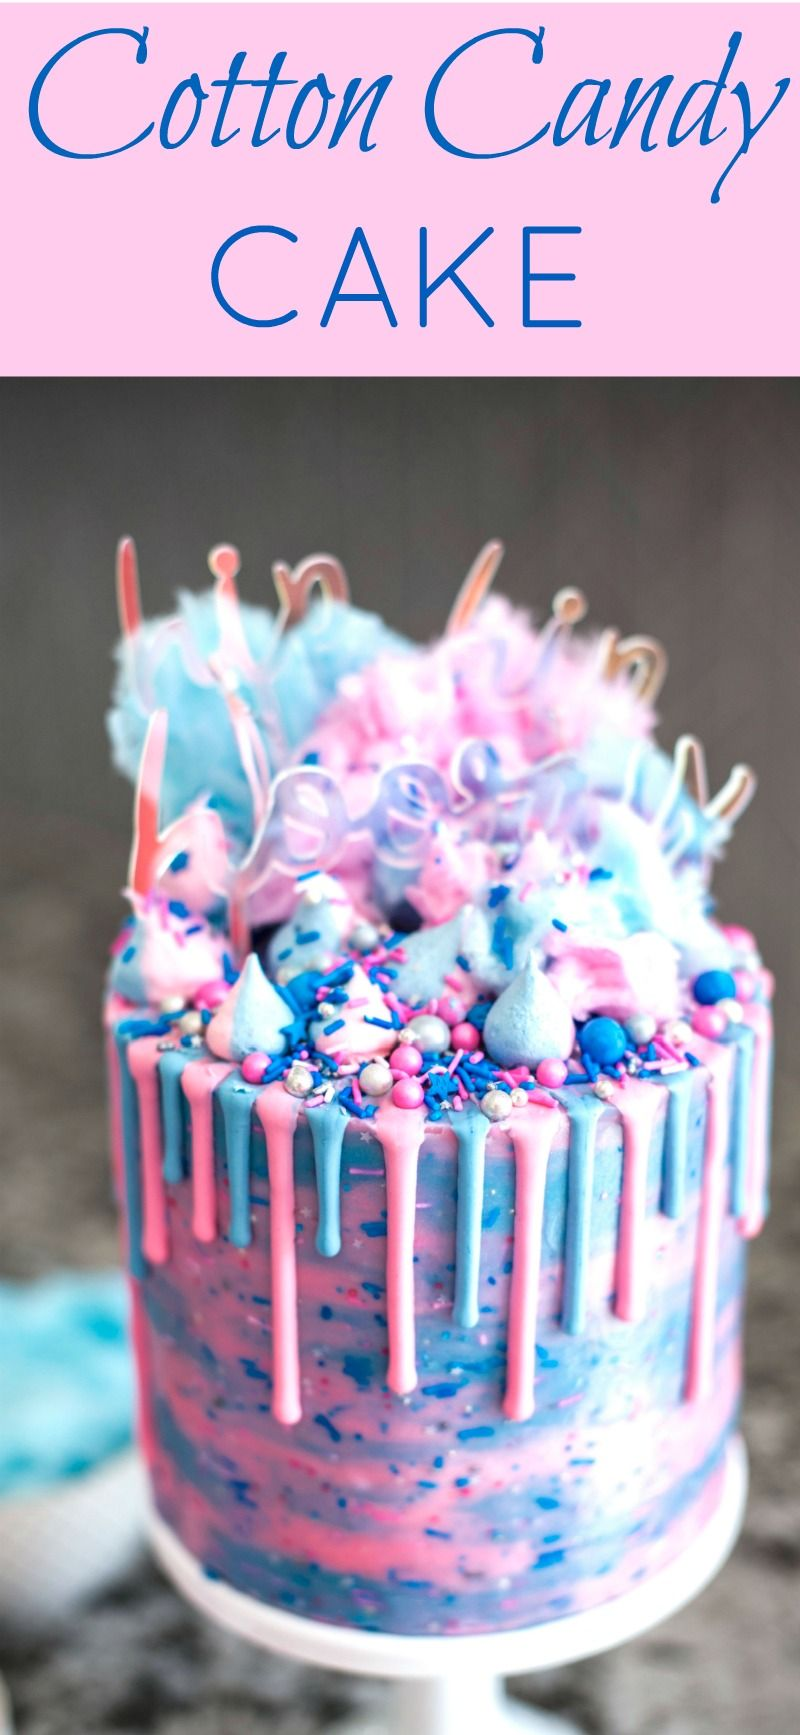 Cotton Candy Cake Recipe Cotton Candy Candy Cakes Cotton